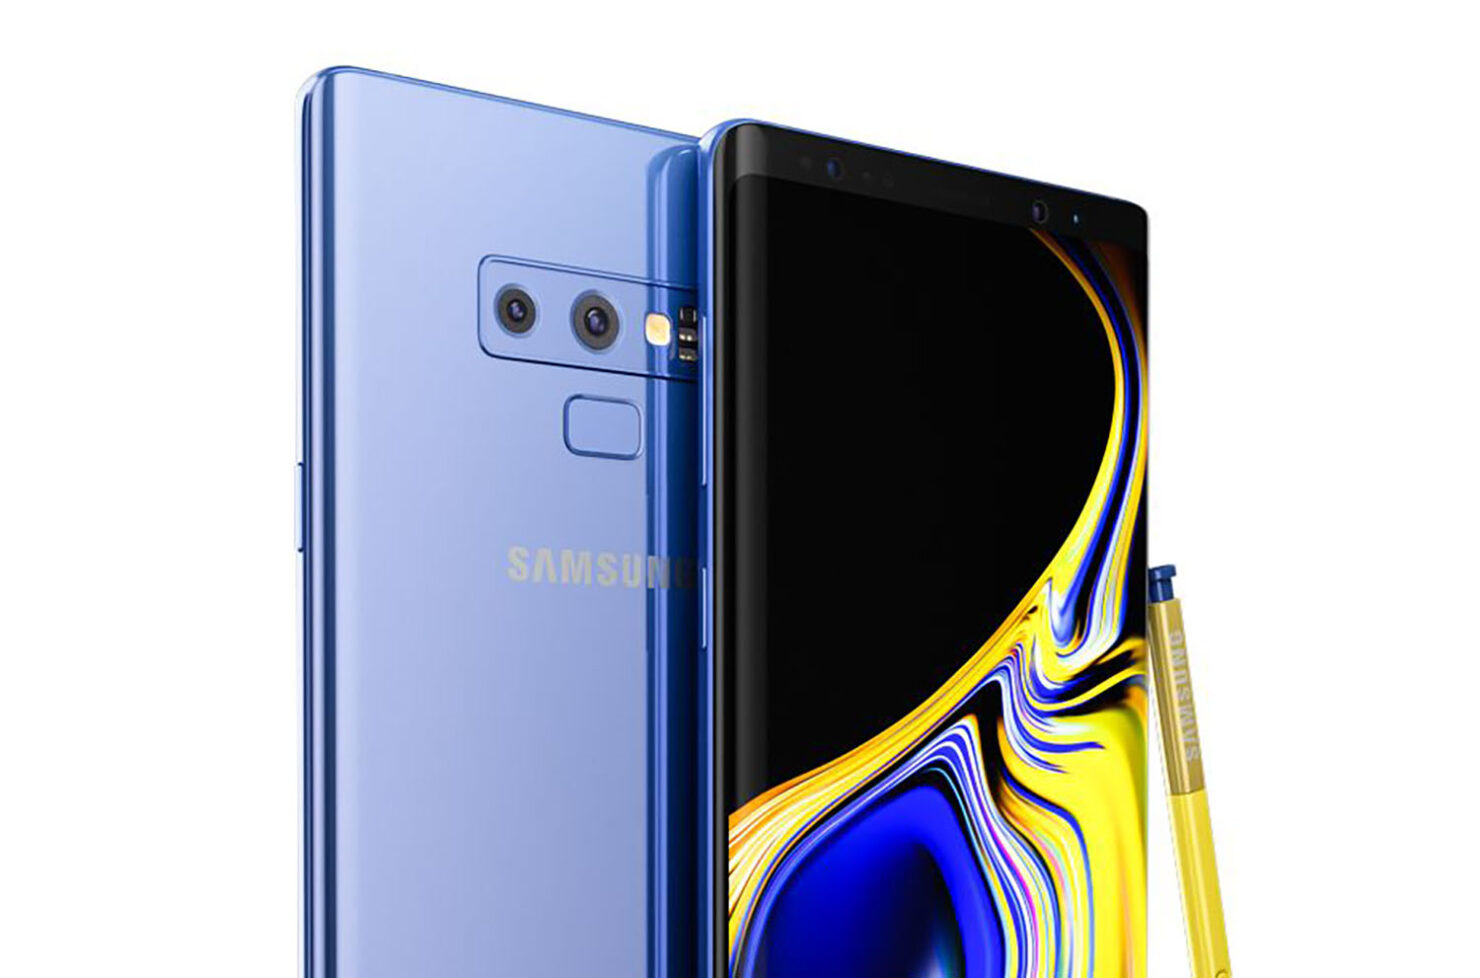 Galaxy Note 9 Unlocked With U.S. Warranty Now Going for as Low as $499; Available in Ocean Blue and Lavender Purple Colors